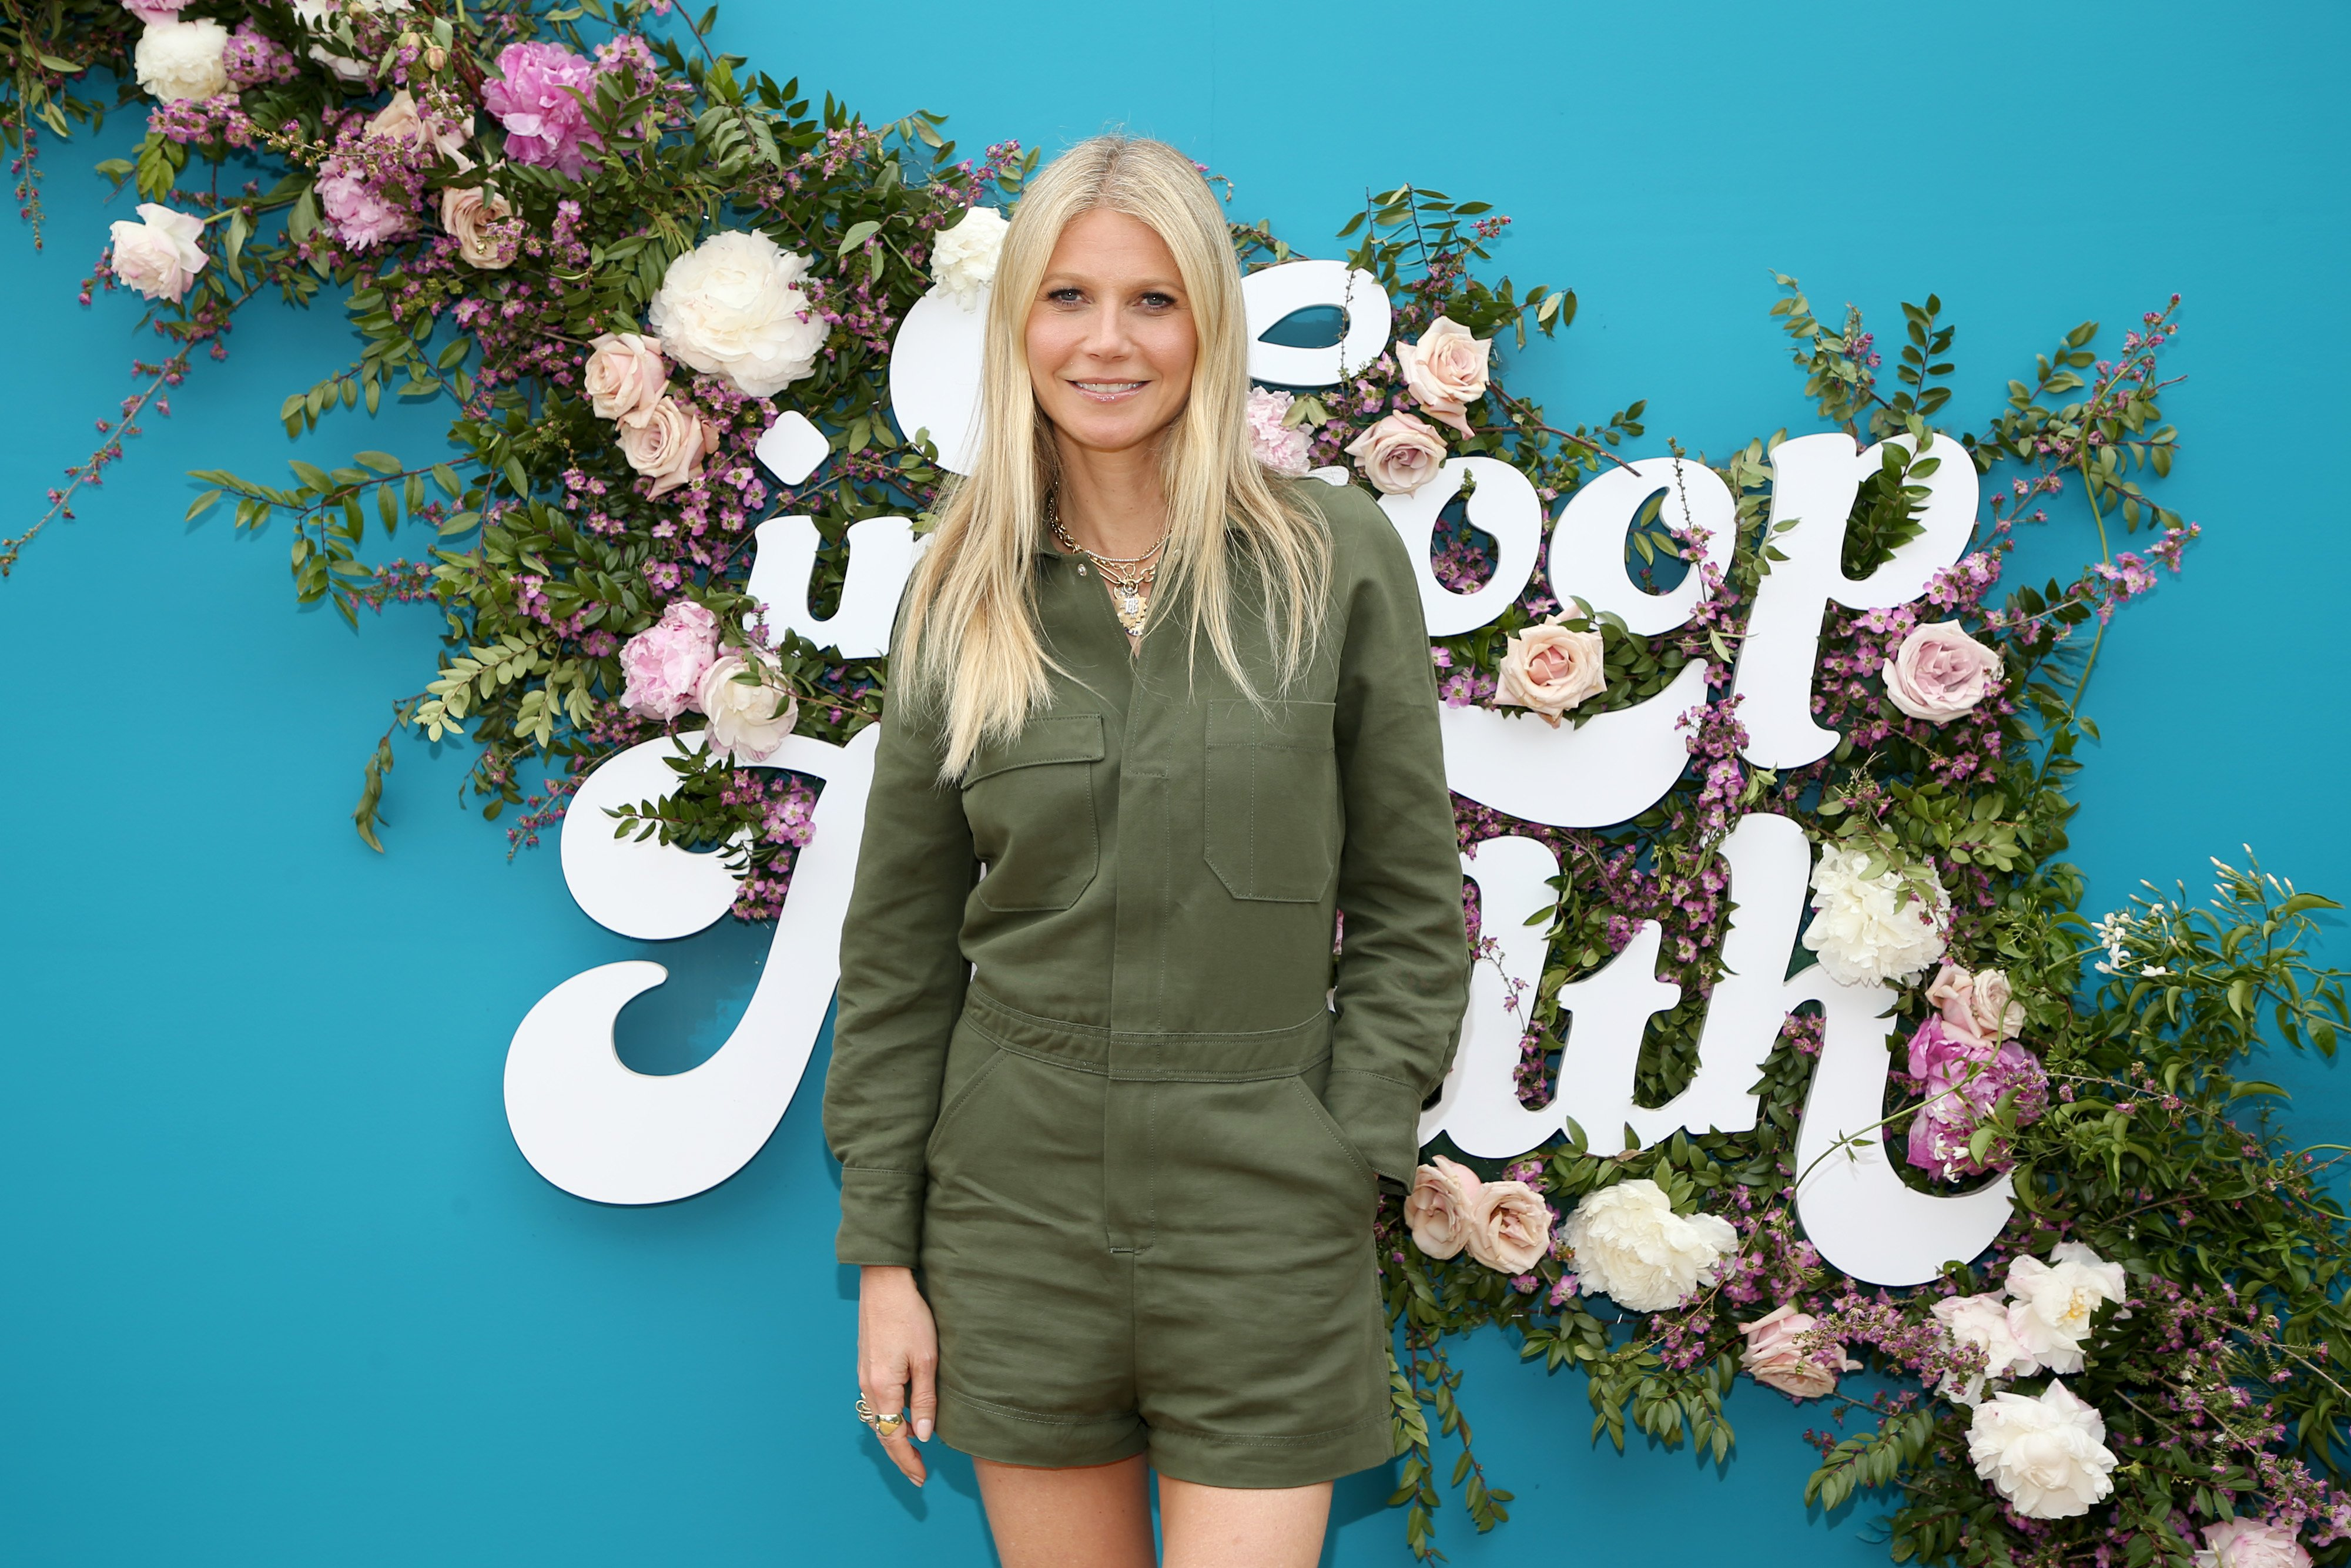 Gwyneth Paltrow attends In goop Health Summit Los Angeles on May 18, 2019, in Los Angeles, California. | Source: Getty Images.